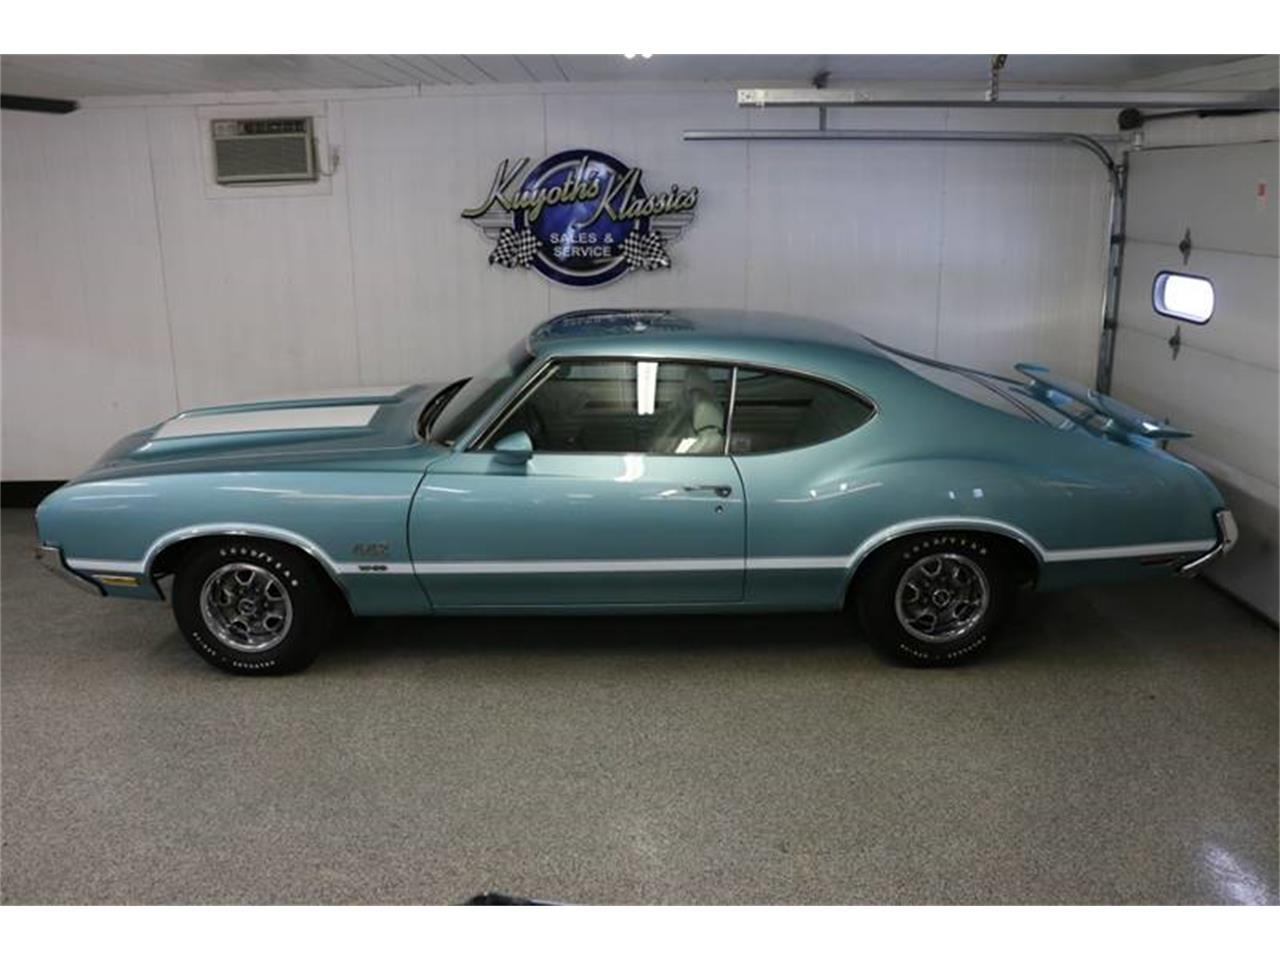 Large Picture of '70 Oldsmobile 442 - $69,000.00 Offered by Kuyoth's Klassics - PD12